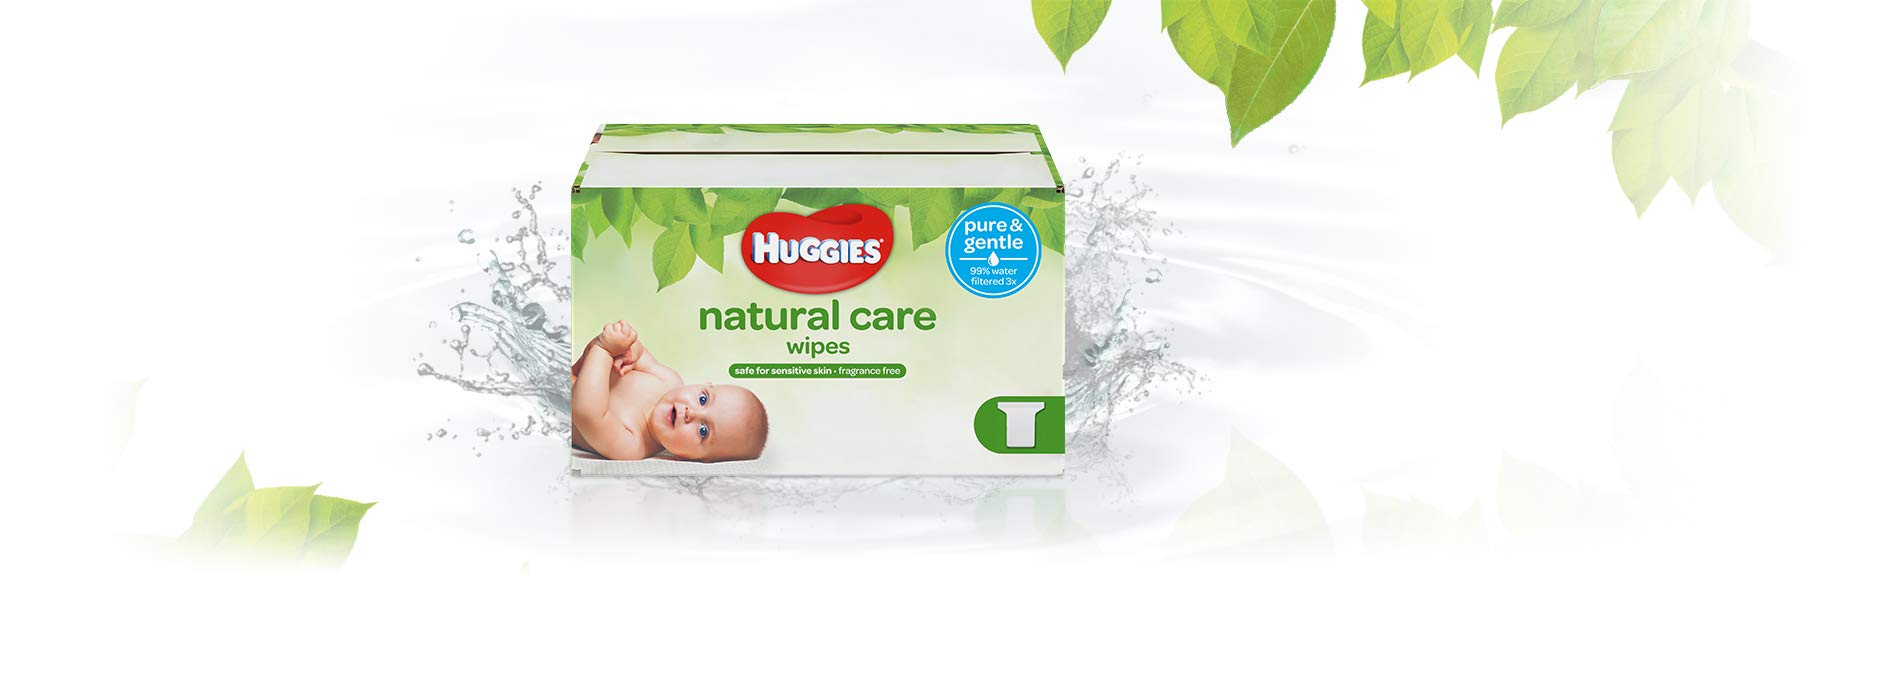 Huggies Natural Care Unscented Baby Wipes, Sensitive, Hypoallergenic, Water-Based, 3 Refill Packs, 648 Count Total by HUGGIES (Image #2)